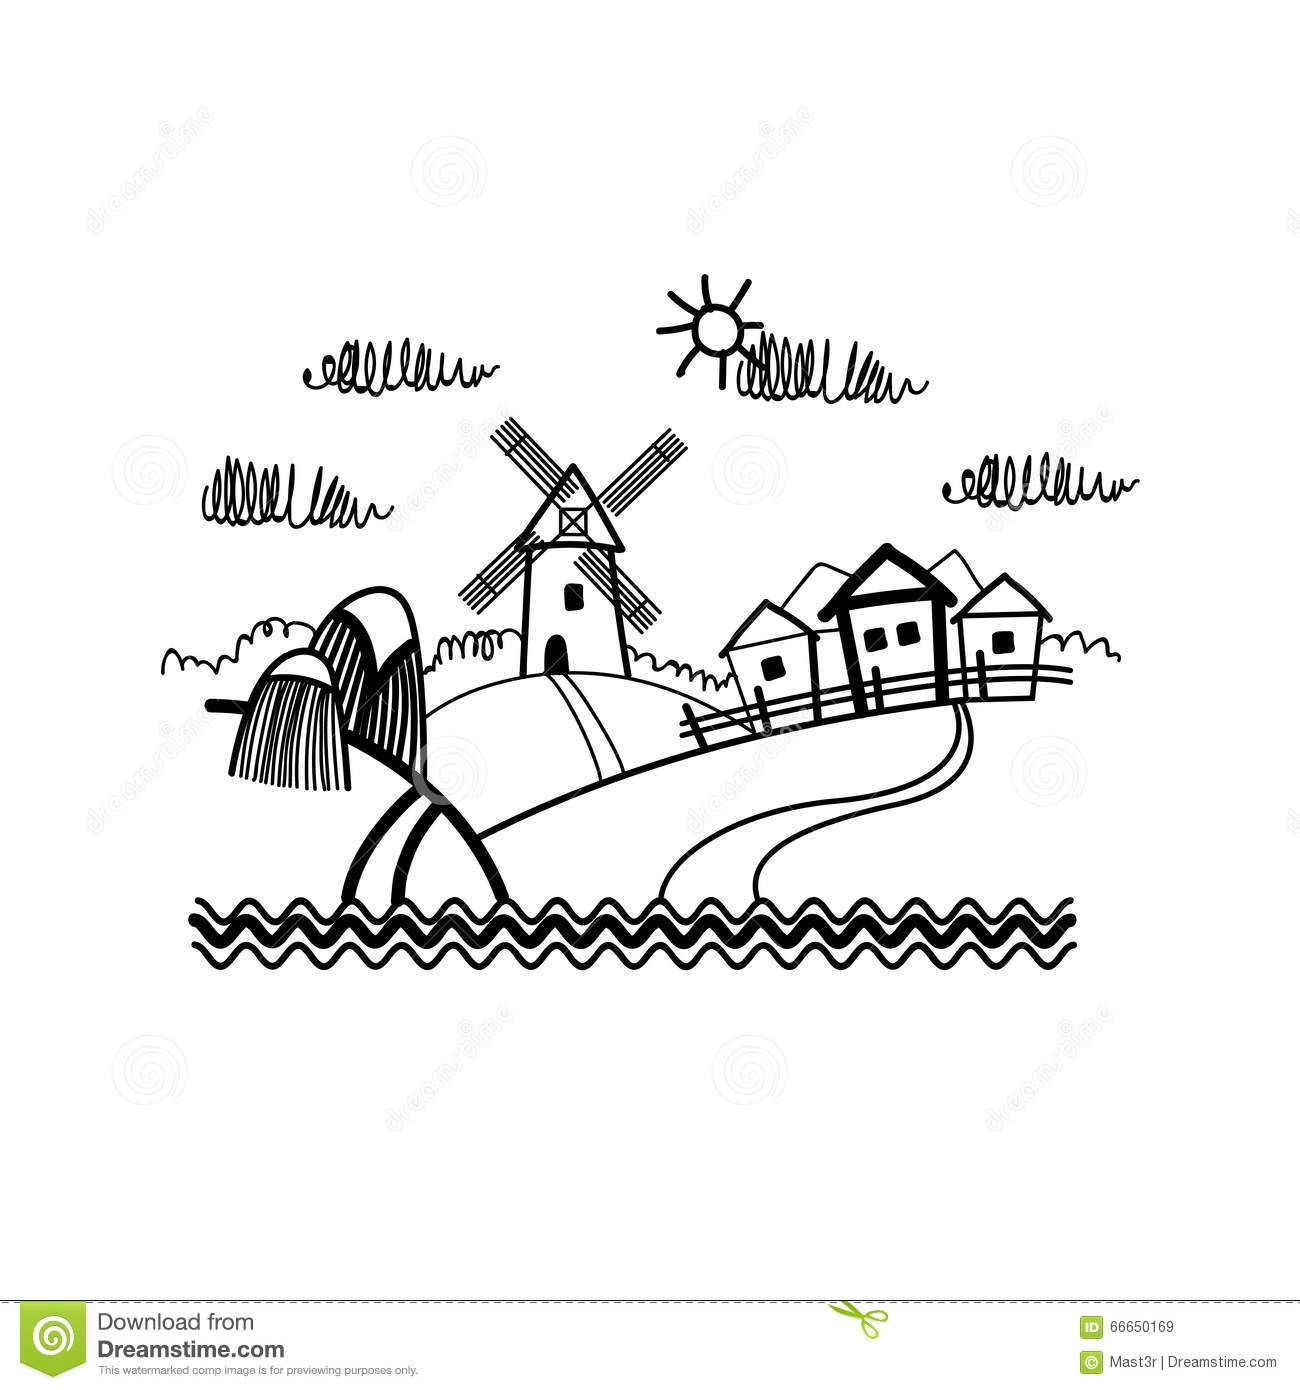 A Simple Sketch Of A Harvest From The Farm Stock Vector ... for Simple Farm Sketch  143gtk